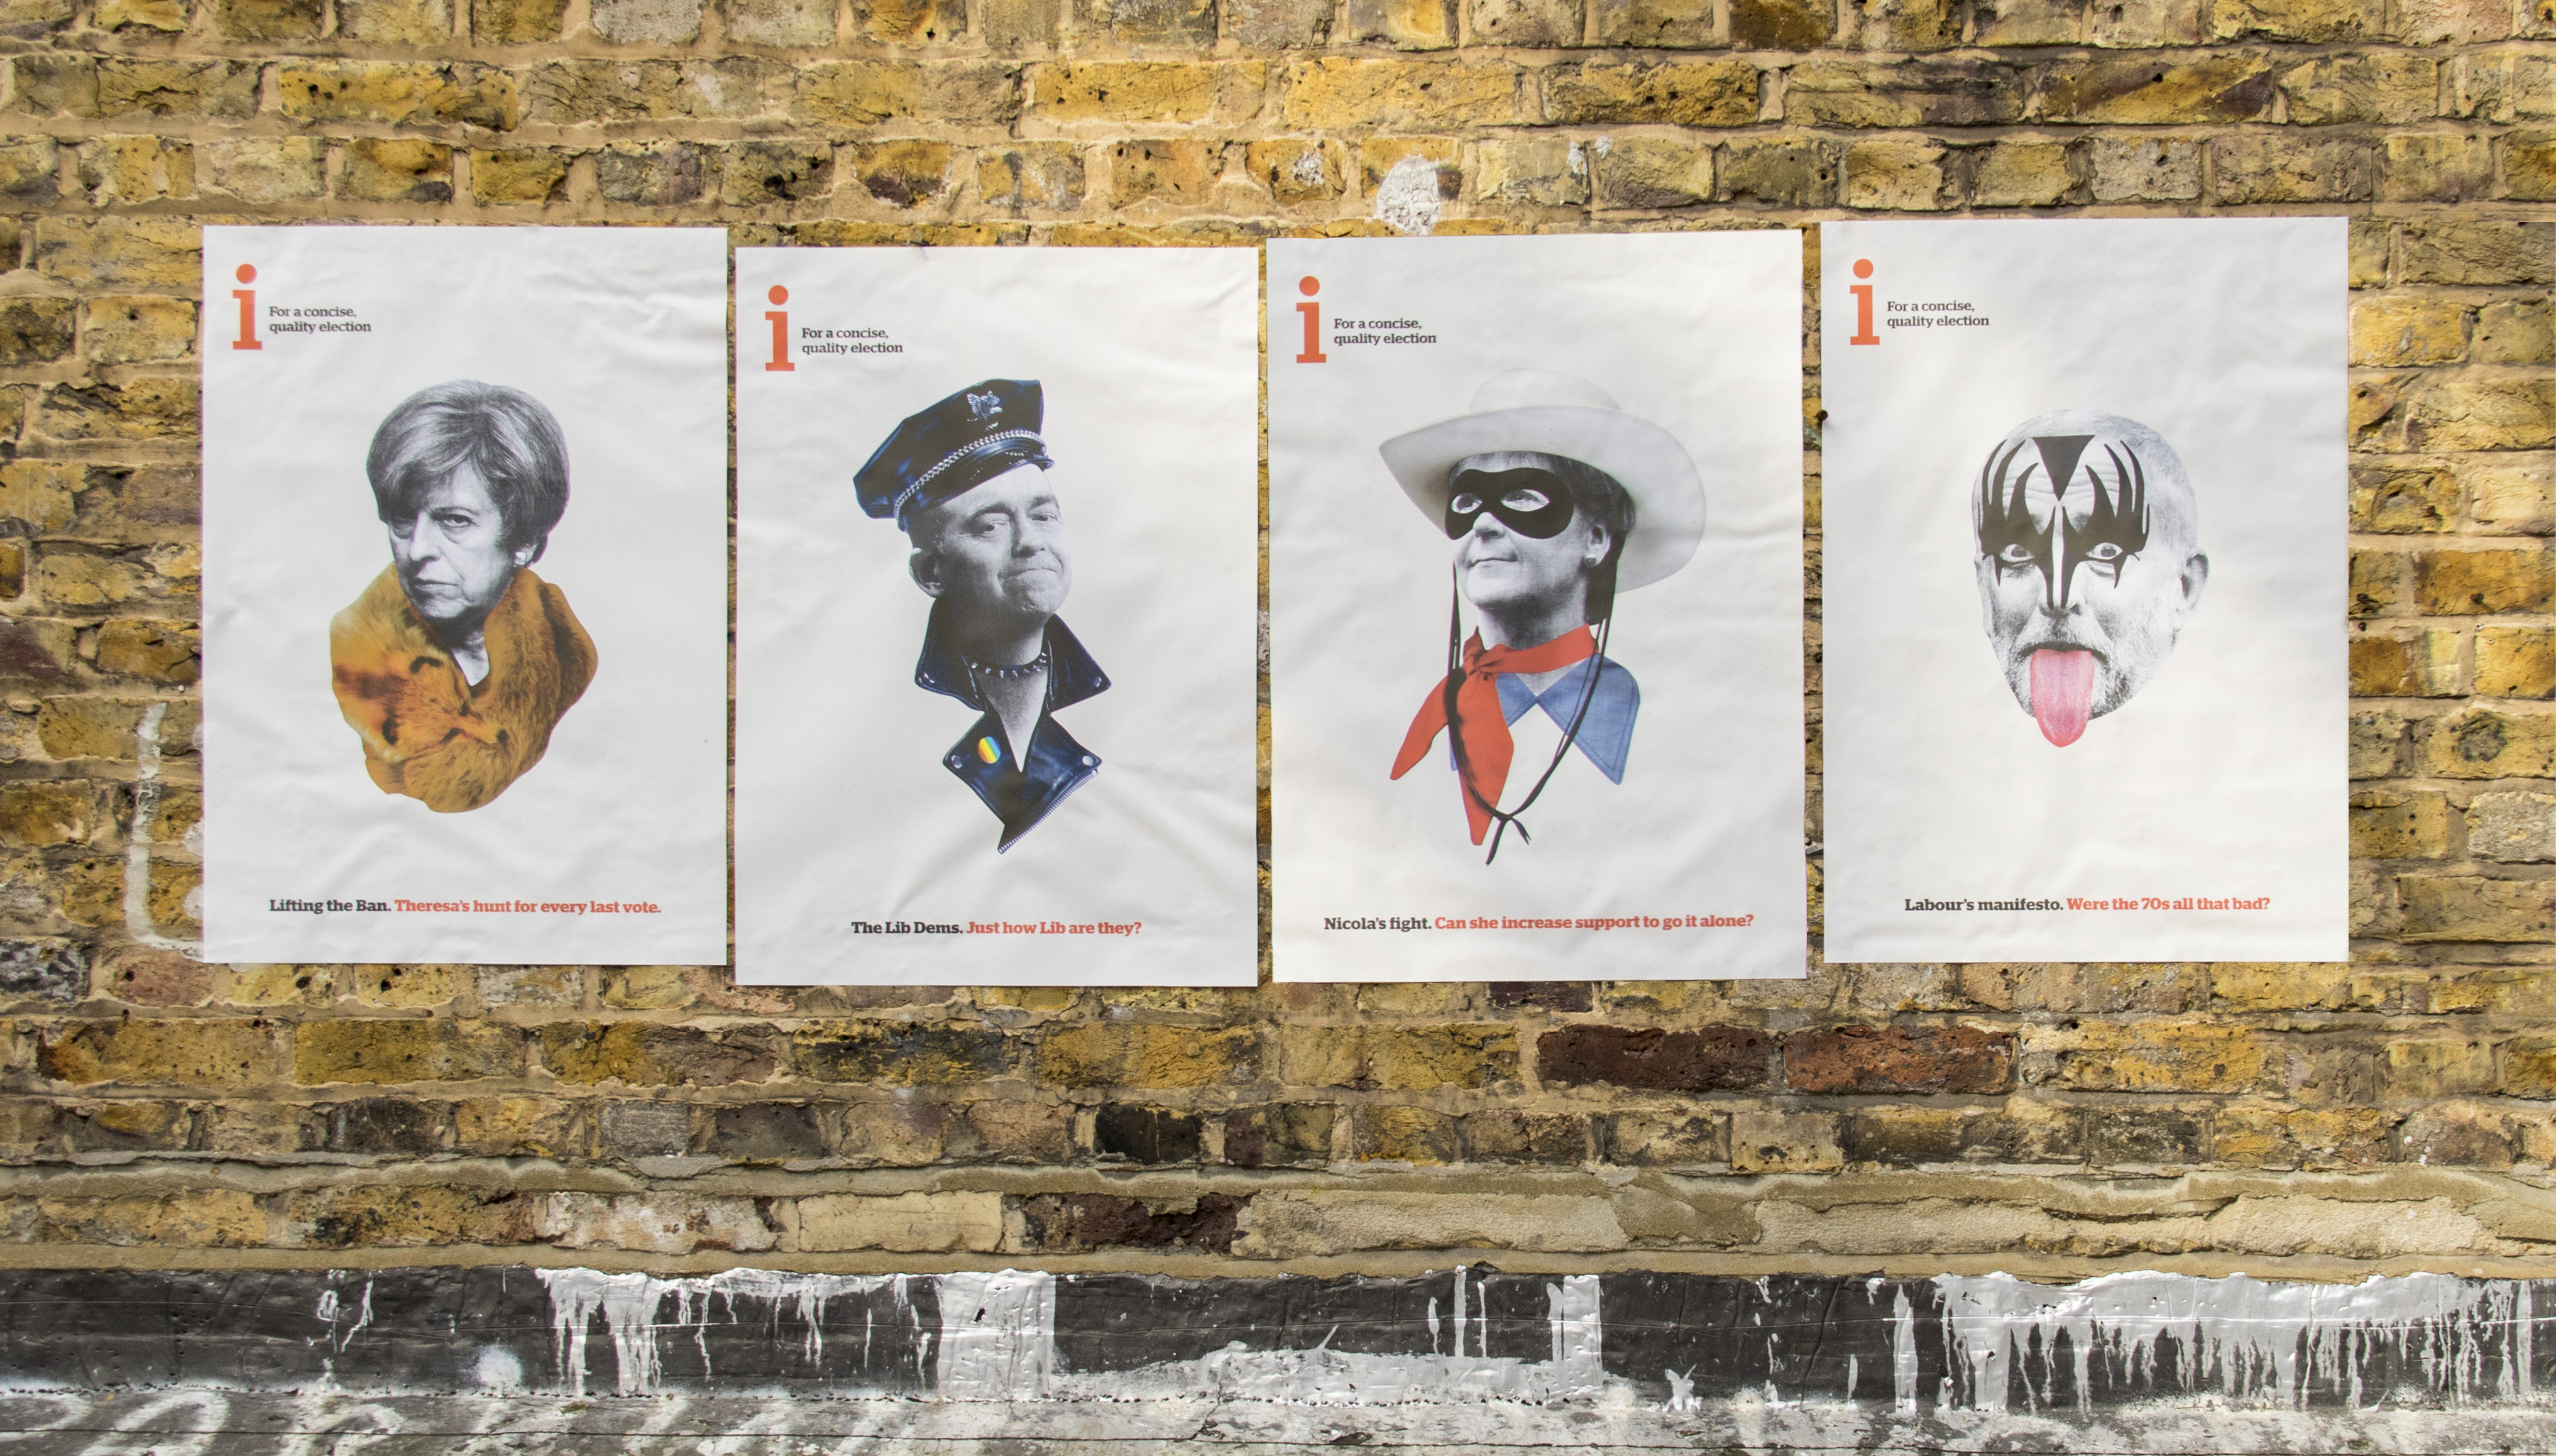 i Newspaper Pokes Fun at Party Leader Downfalls in Amusing UK Election Prints